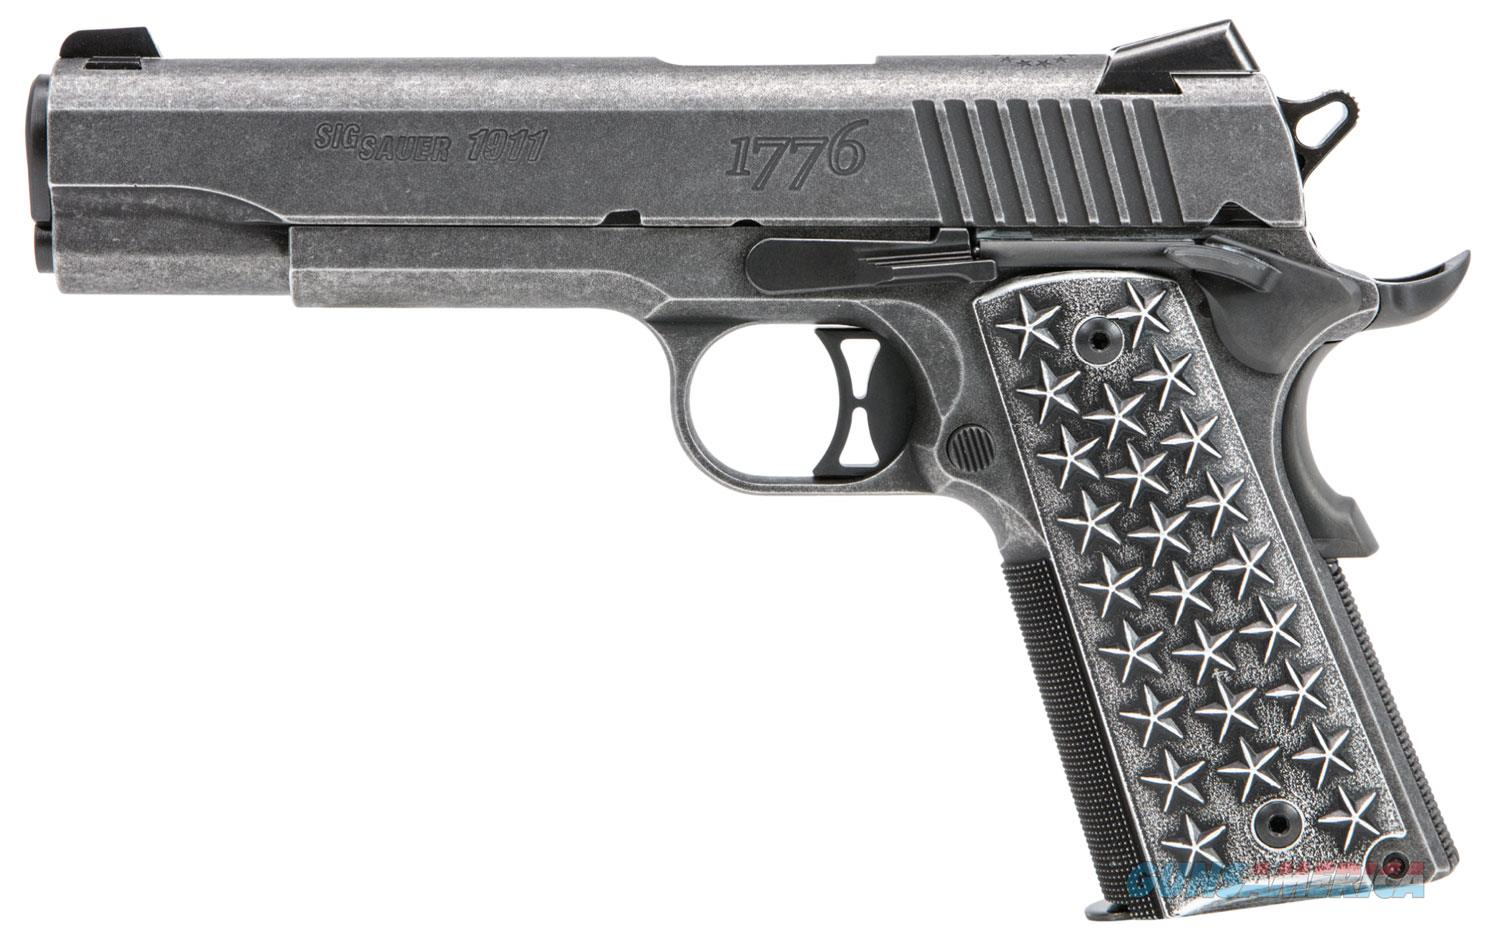 "Sig Sauer 1911 We The People.45 ACP 5"" 7+1 Star Aluminum Grip Distressed Stainless Steel - New in Case  Guns > Pistols > Sig - Sauer/Sigarms Pistols > 1911"